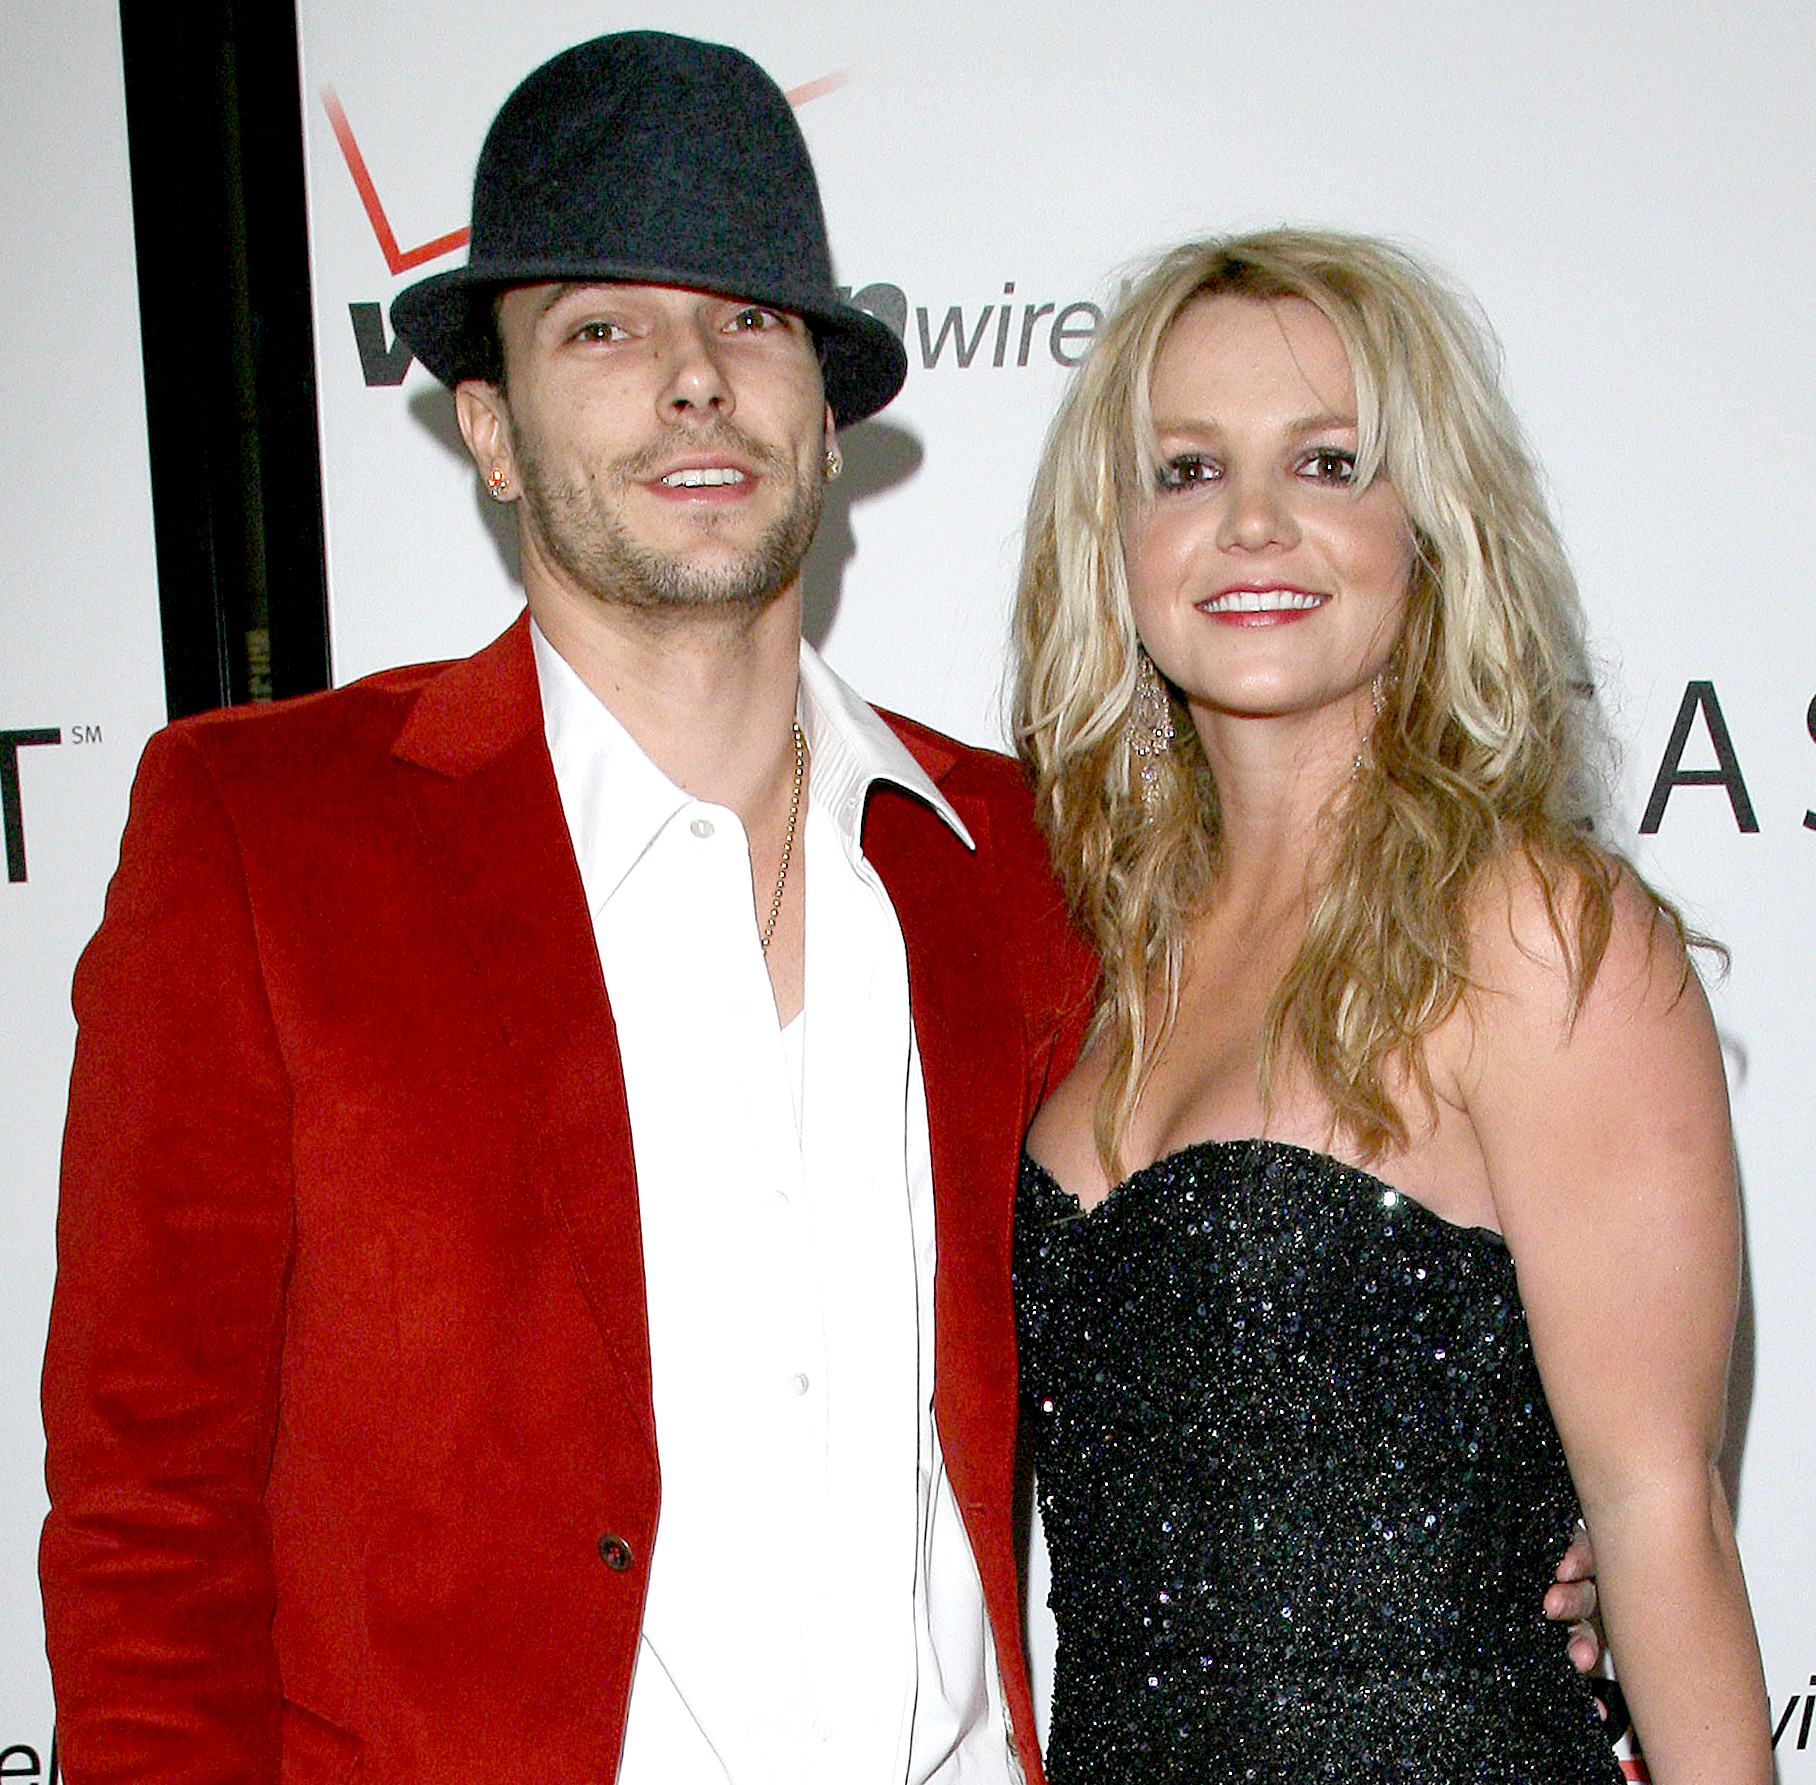 """June-2015-Kevin-Federline,-Britney-Spears - The model remembered his relationship with the Vegas performer fondly in June 2015, telling Us , """"That time of my life, it was great. It was fun, it was crazy, it was chaos…The limelight, the entertainment business, the lifestyle — period."""" He also called his former spouse a """"loving, caring person,"""" adding, """"There was ups and downs. We're not perfect people, obviously. There's things that she did, there's things that I did…I think all of that is just from being young and everything plays a part into it…[but] I have so many great memories, they outweigh the bad. For us to split up and me say that, it should speak very loudly."""""""